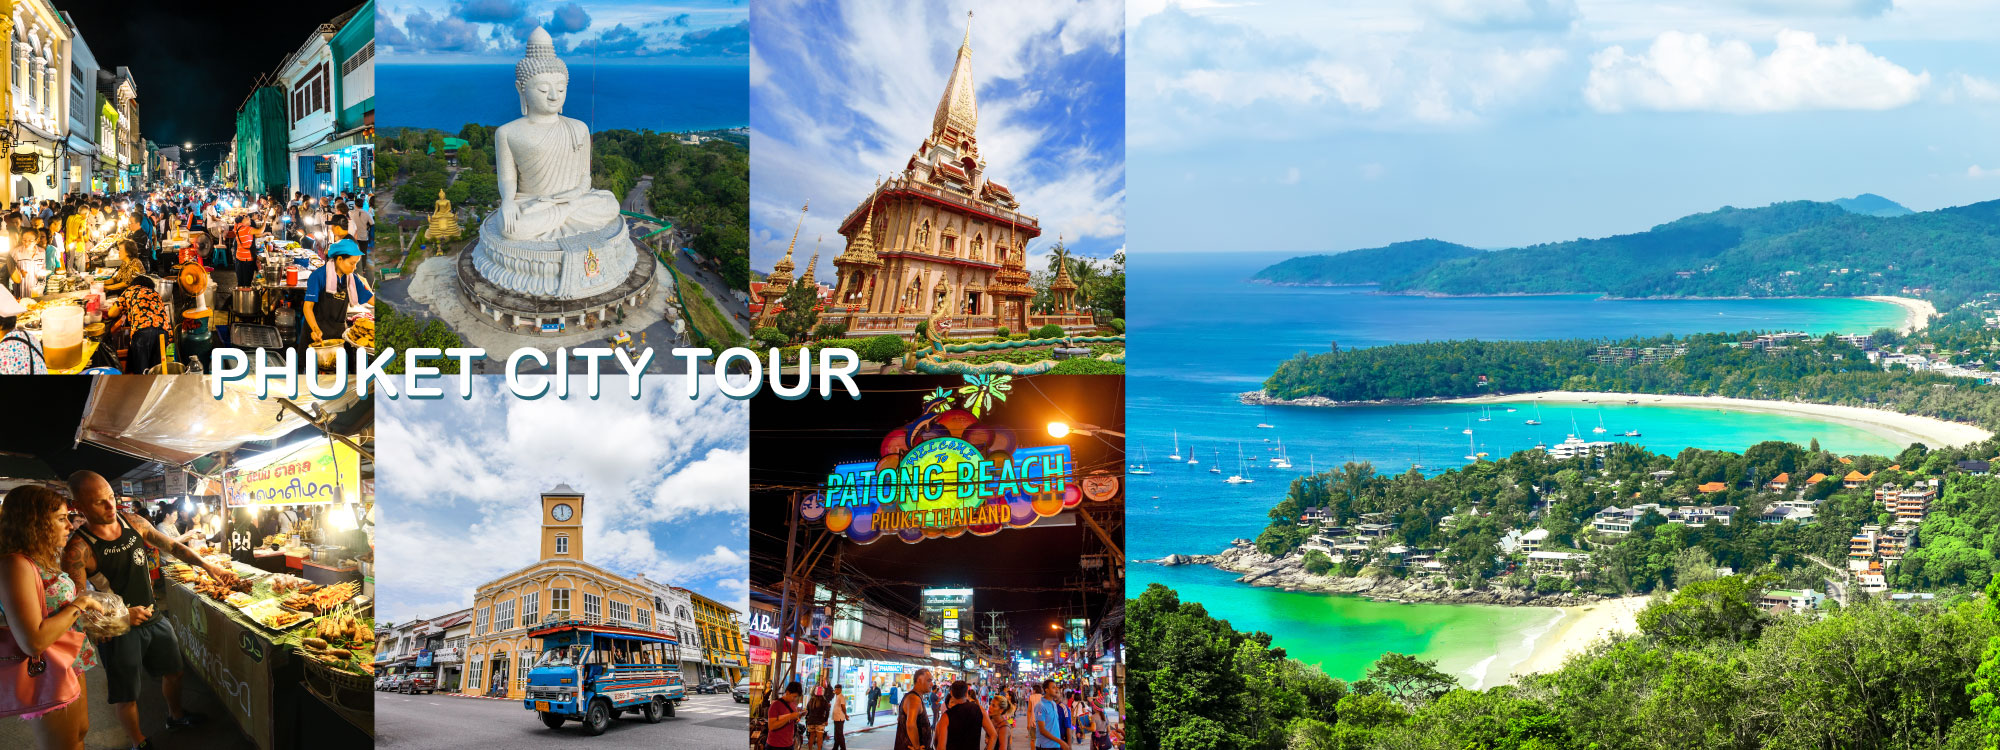 Phuket City Tour Package